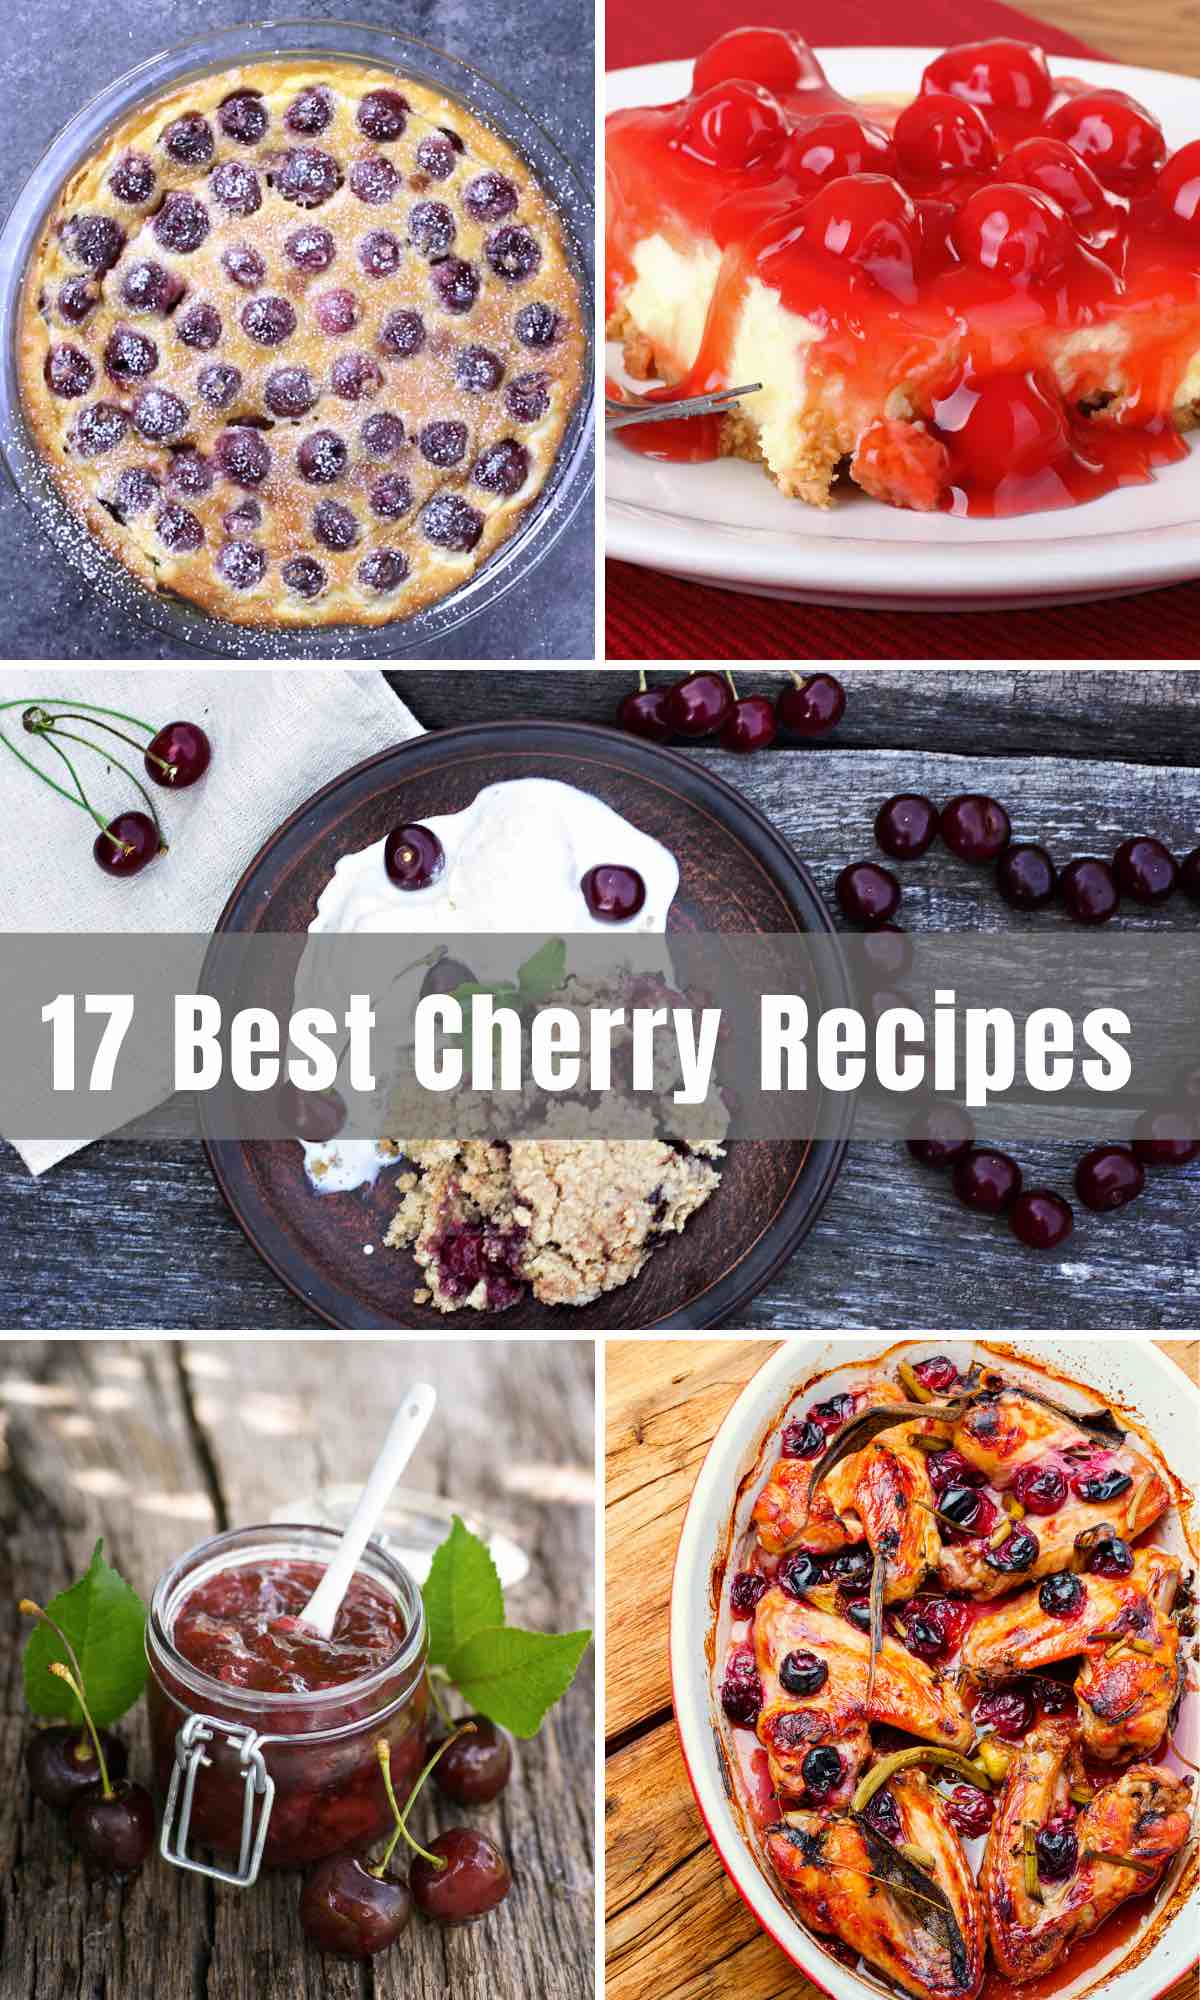 There's nothing like a summer dessert featuring fresh and sweet-tart cherries. We've gathered the 17 Best Cherry Recipes to satisfy every craving. Want a show-stopping cherry dessert for a party? Try our Cherry Pie and Cherry Clafoutis. Feel like a healthy treat? Try Cherry Crisp. Looking for something savory? We've got delicious Oven Roasted Cherry Chicken. Cannot wait until cherry season? You'll find some amazing recipes with canned cherries too!